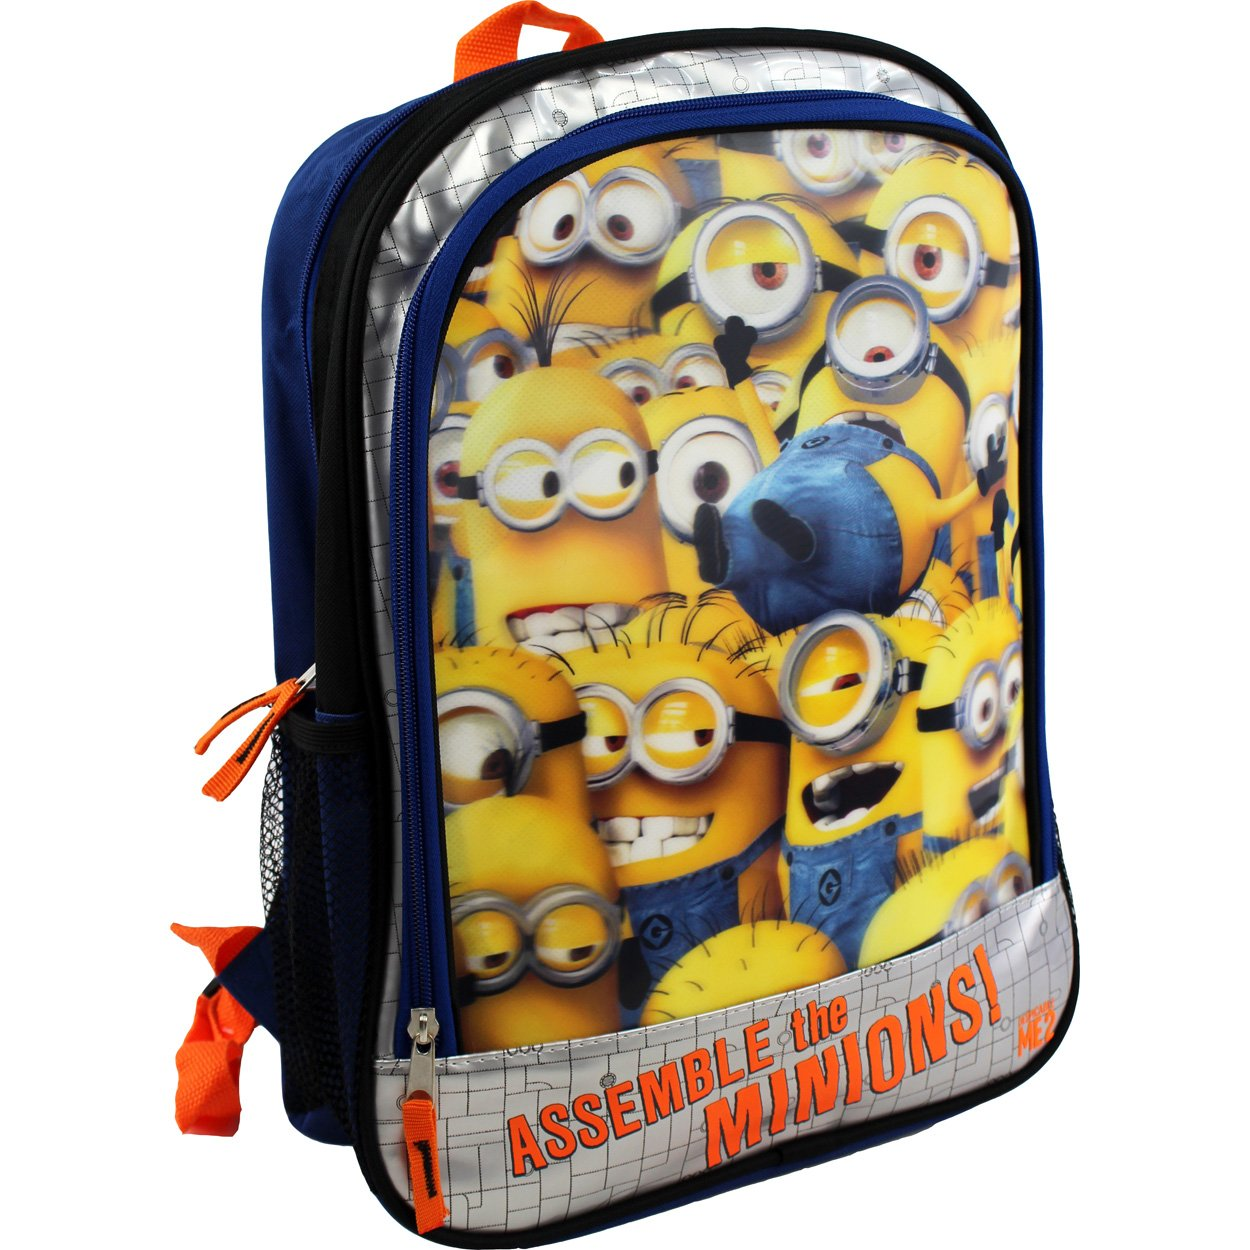 Despicable Me Assemble the Minions School Backpack